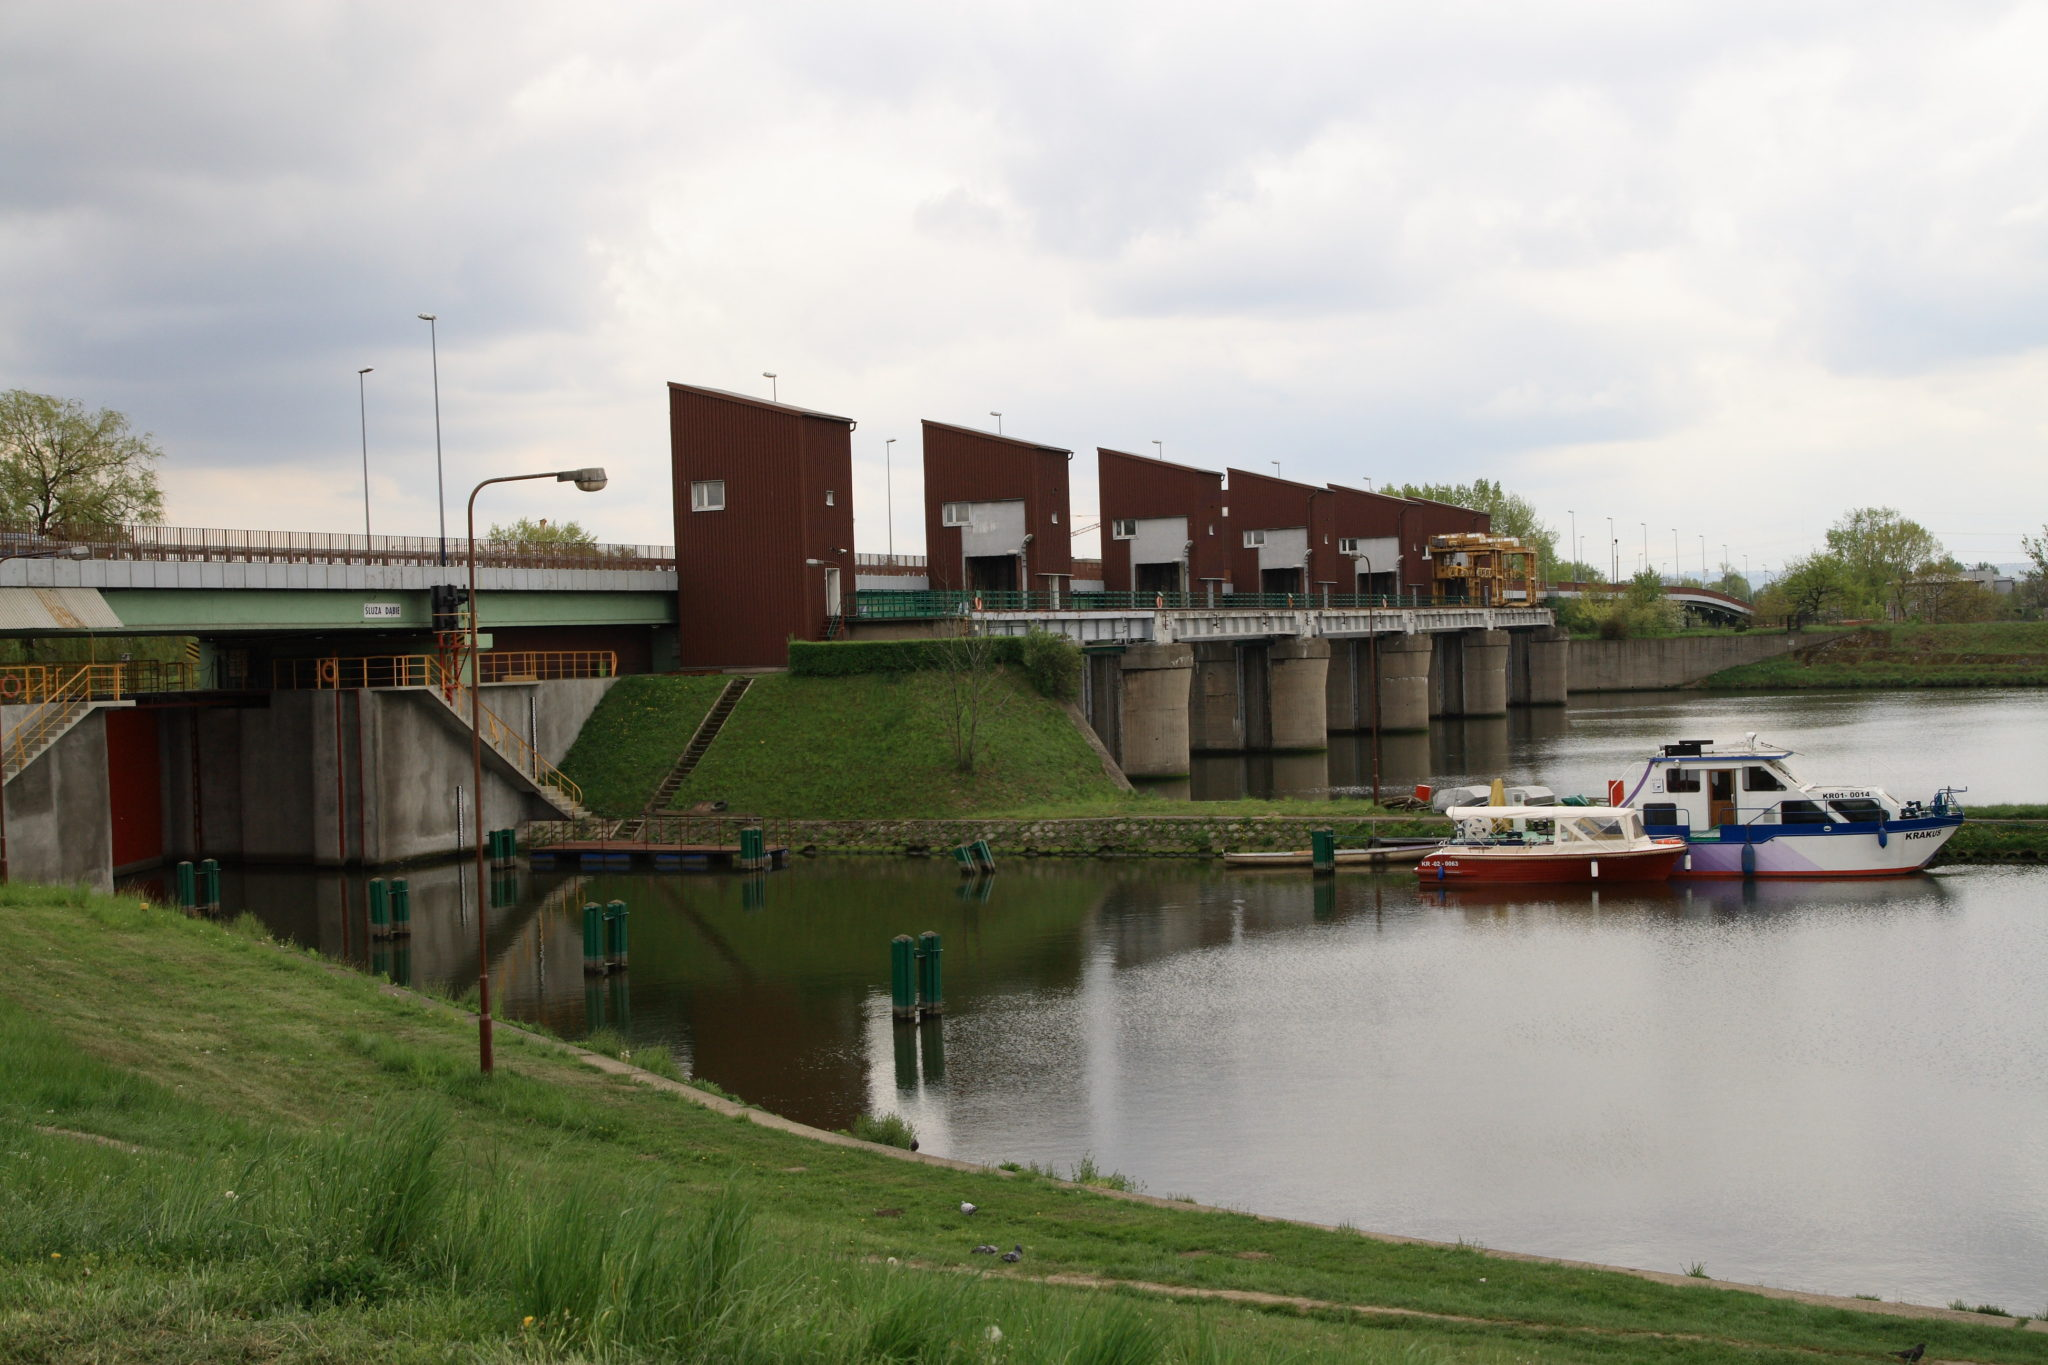 Dąbie Barrage, near where the body was discovered